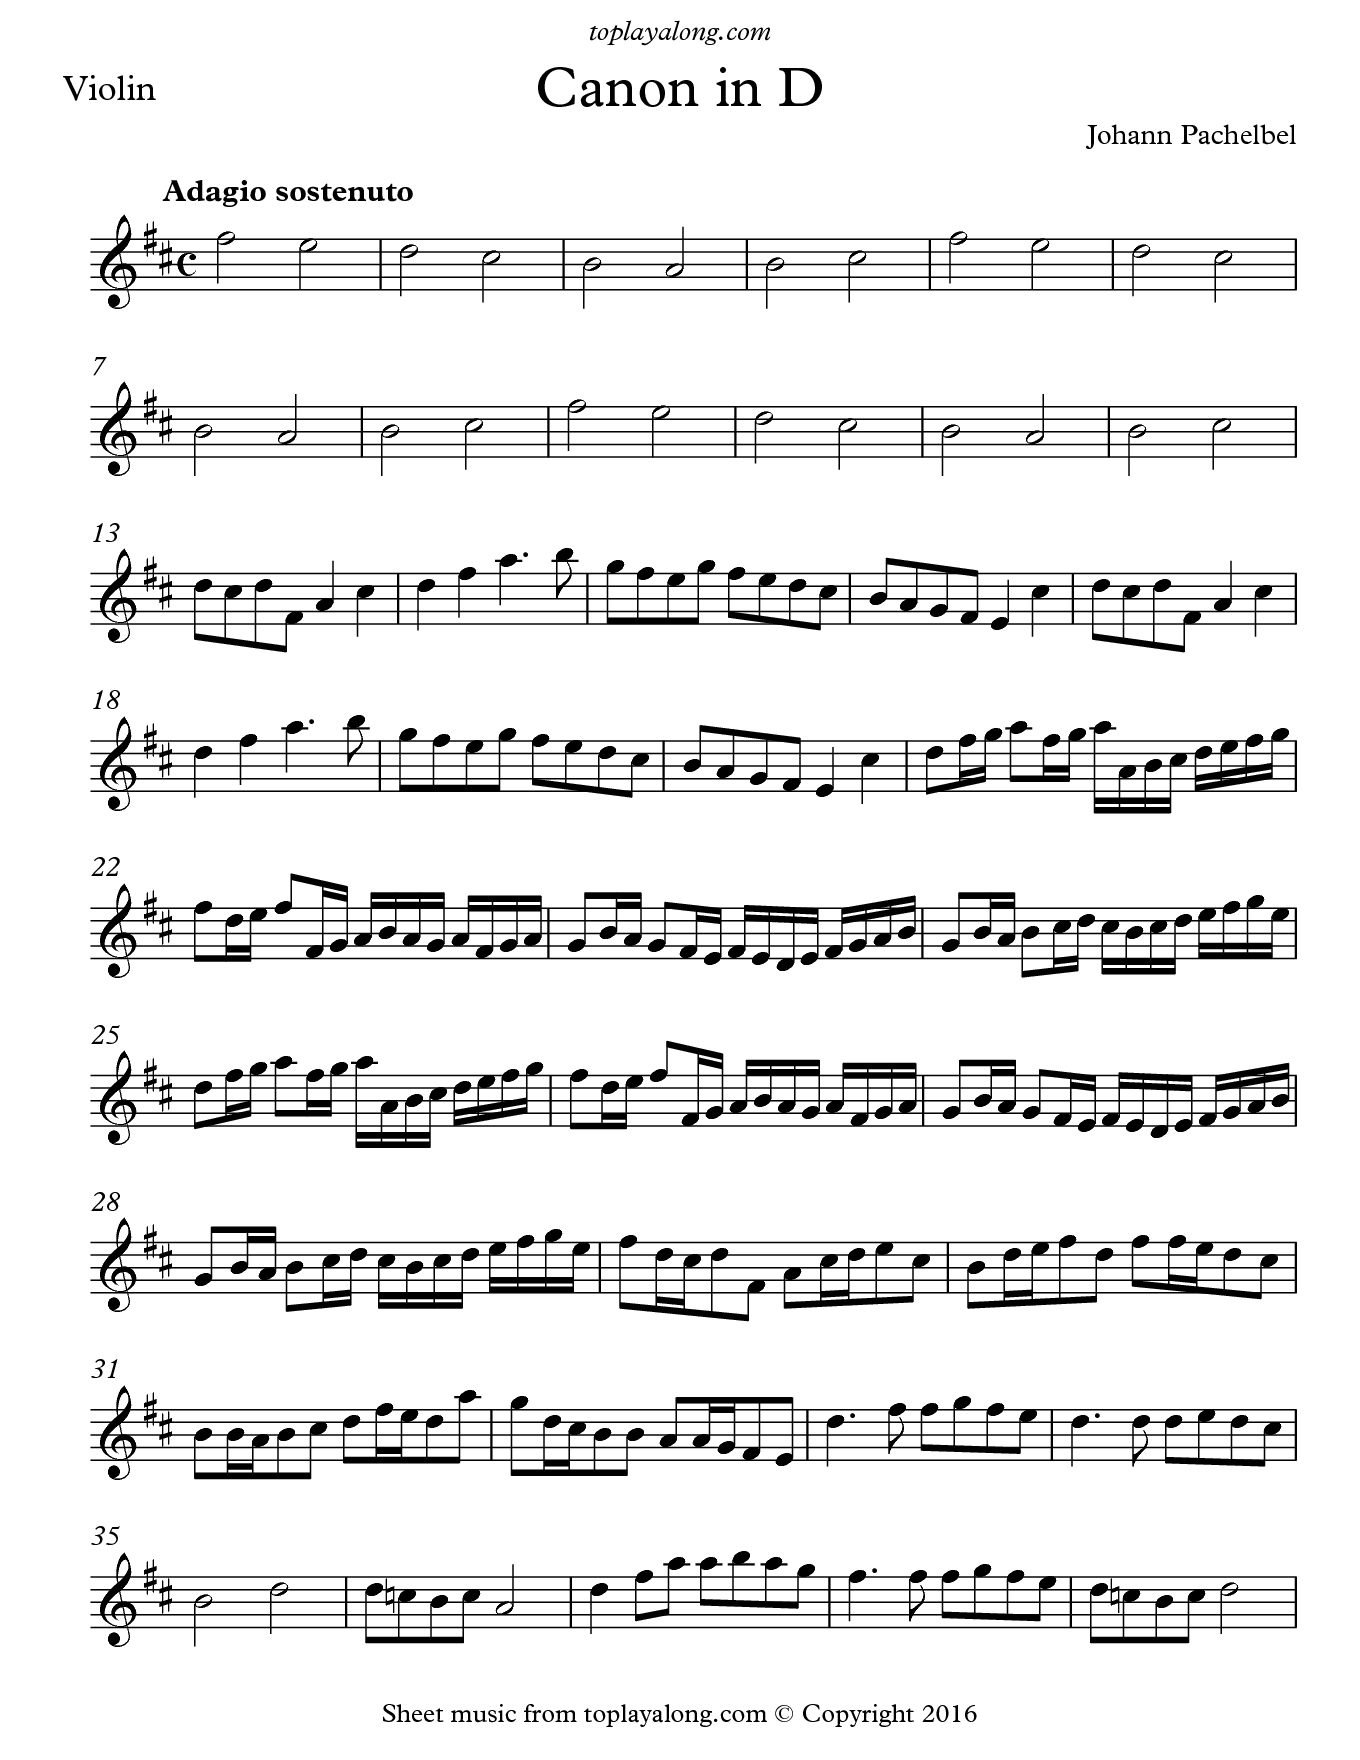 Canon in D by Pachelbel  Free sheet music for violin  Visit